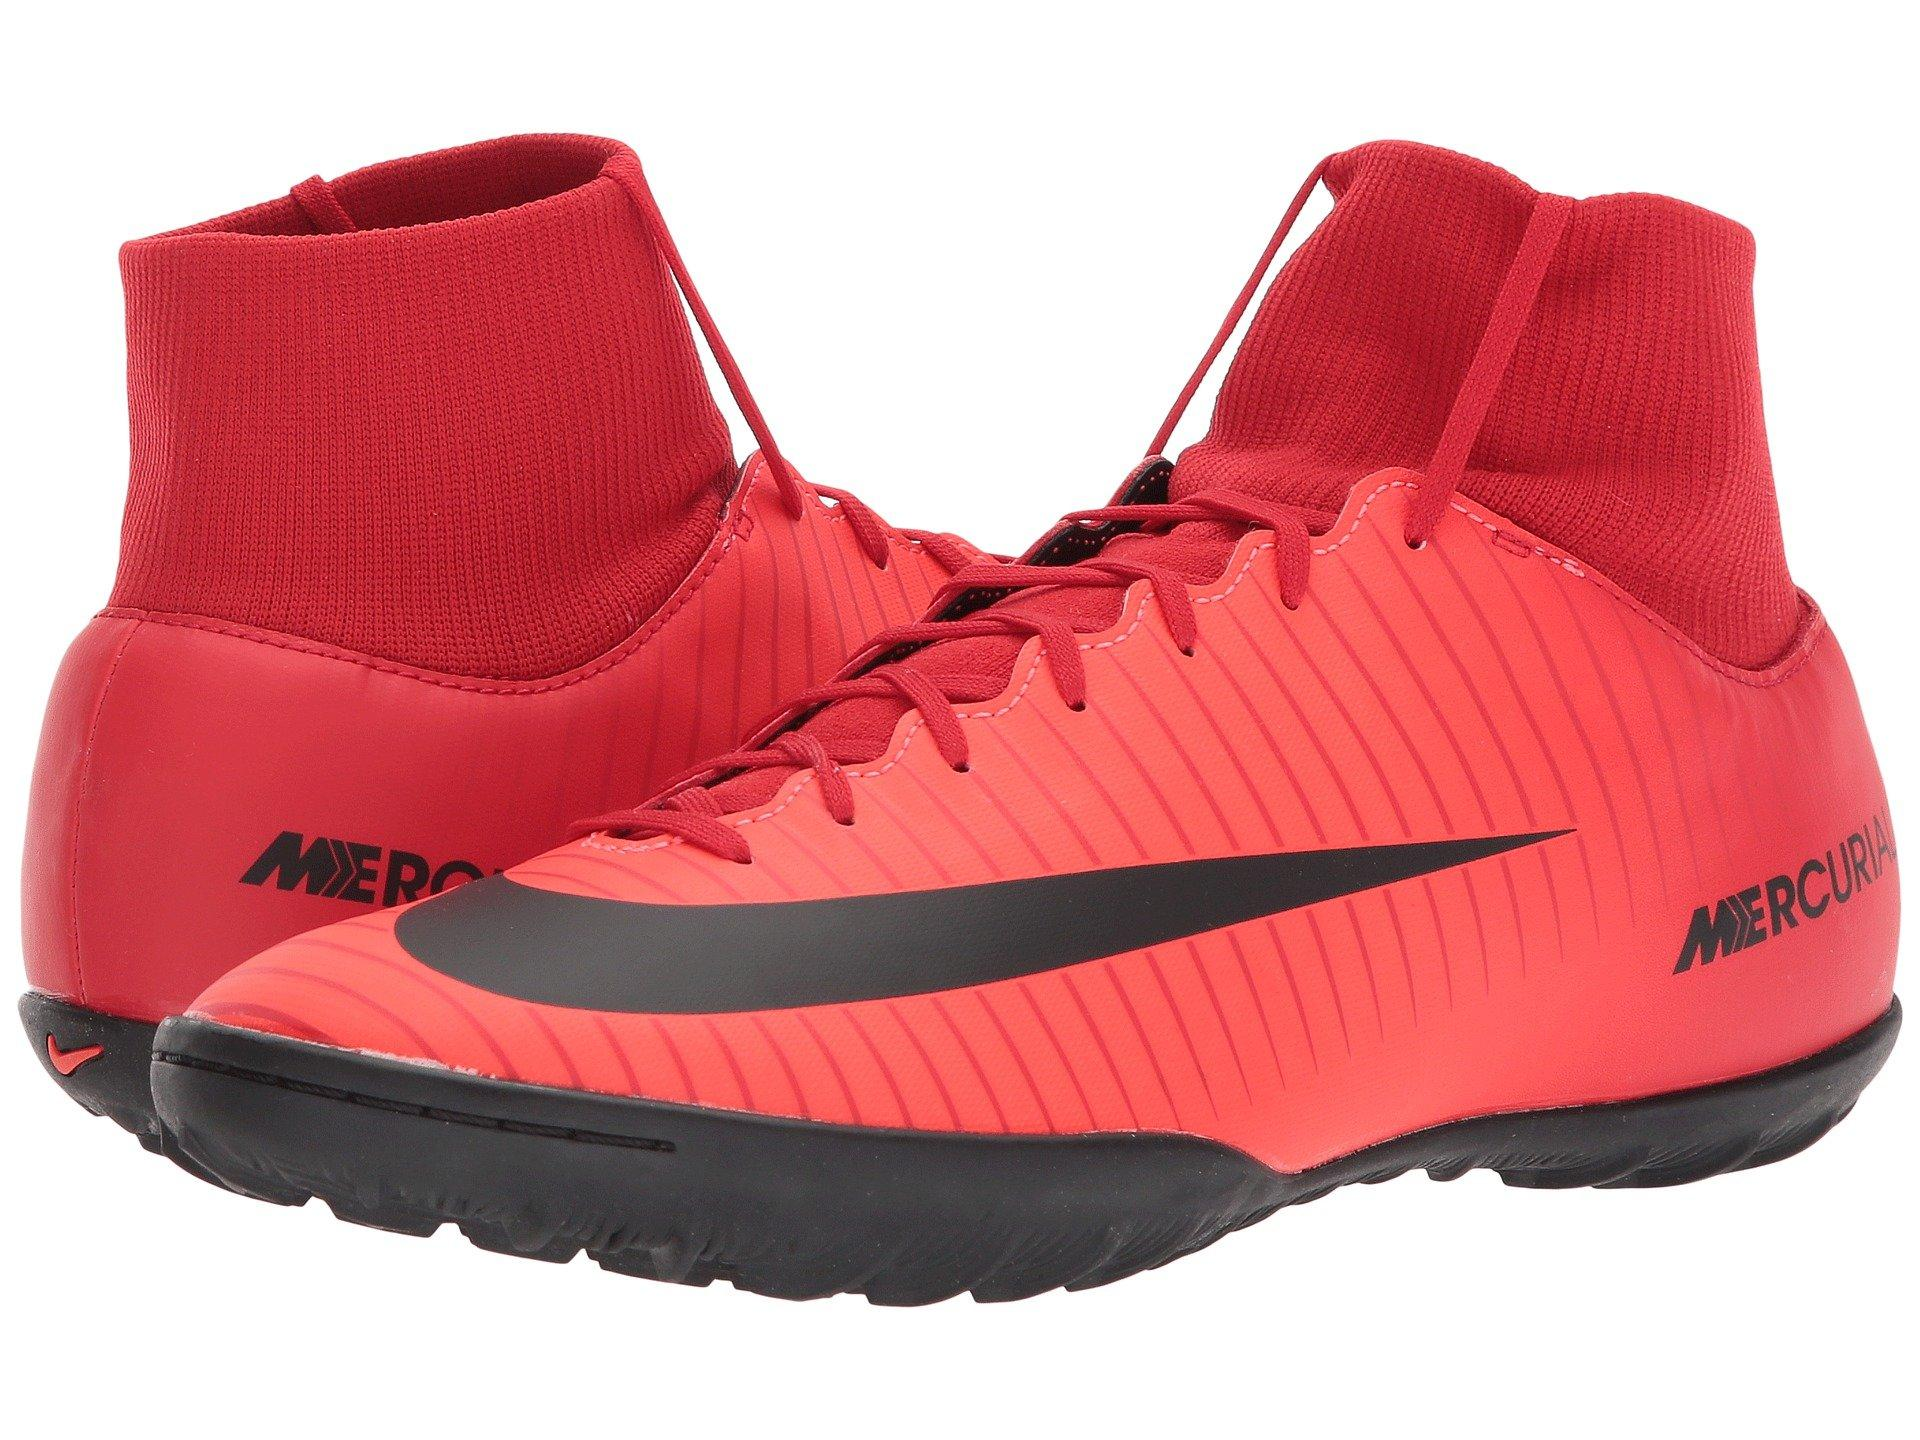 Nike , University Red/black/bright Crimson